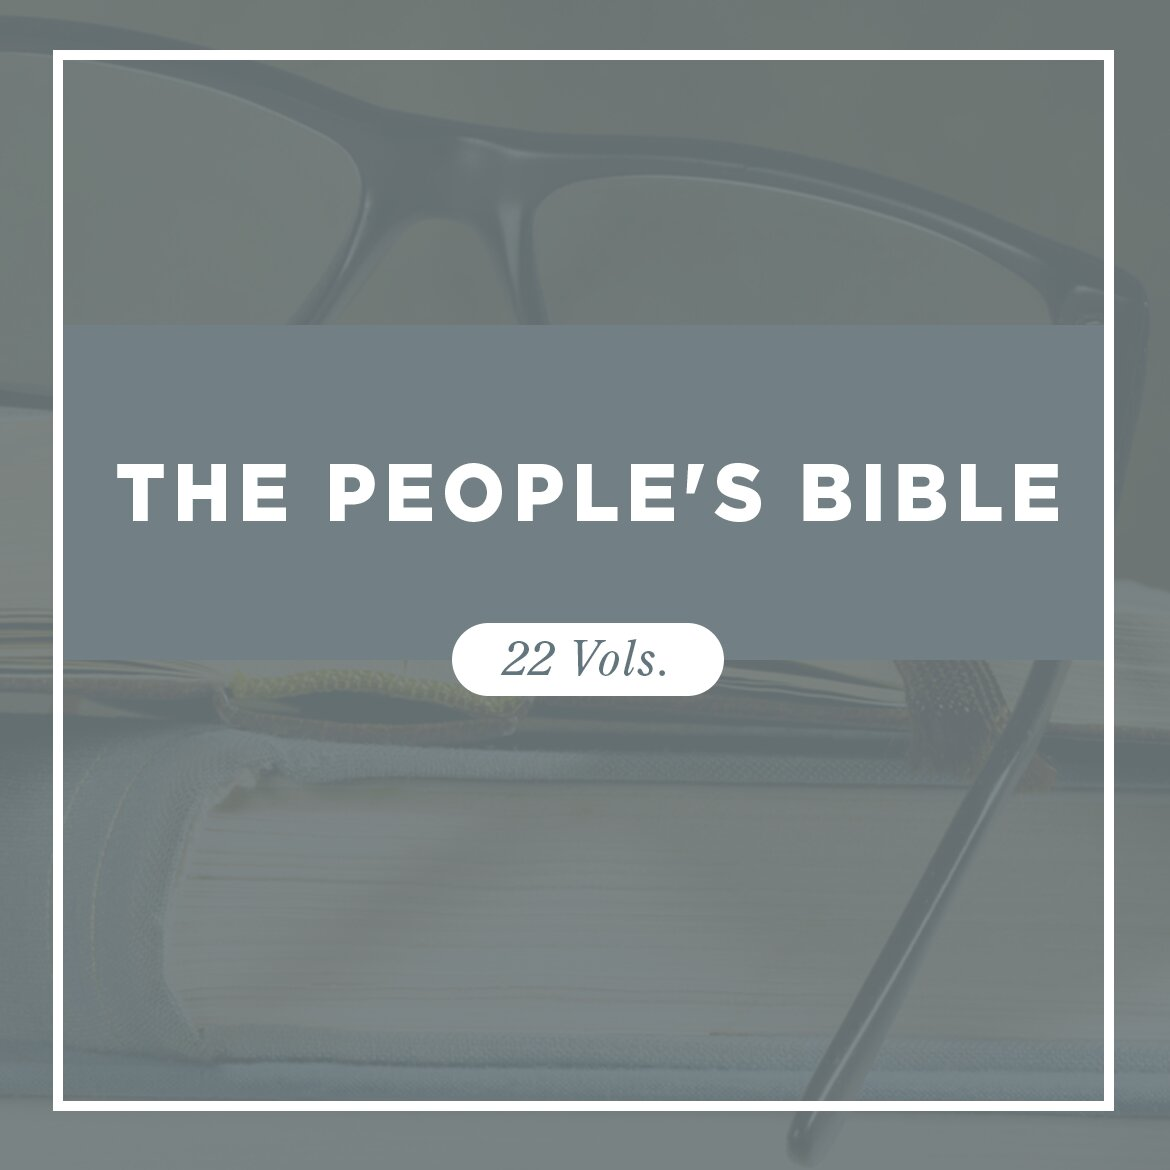 The People's Bible (22 vols.)